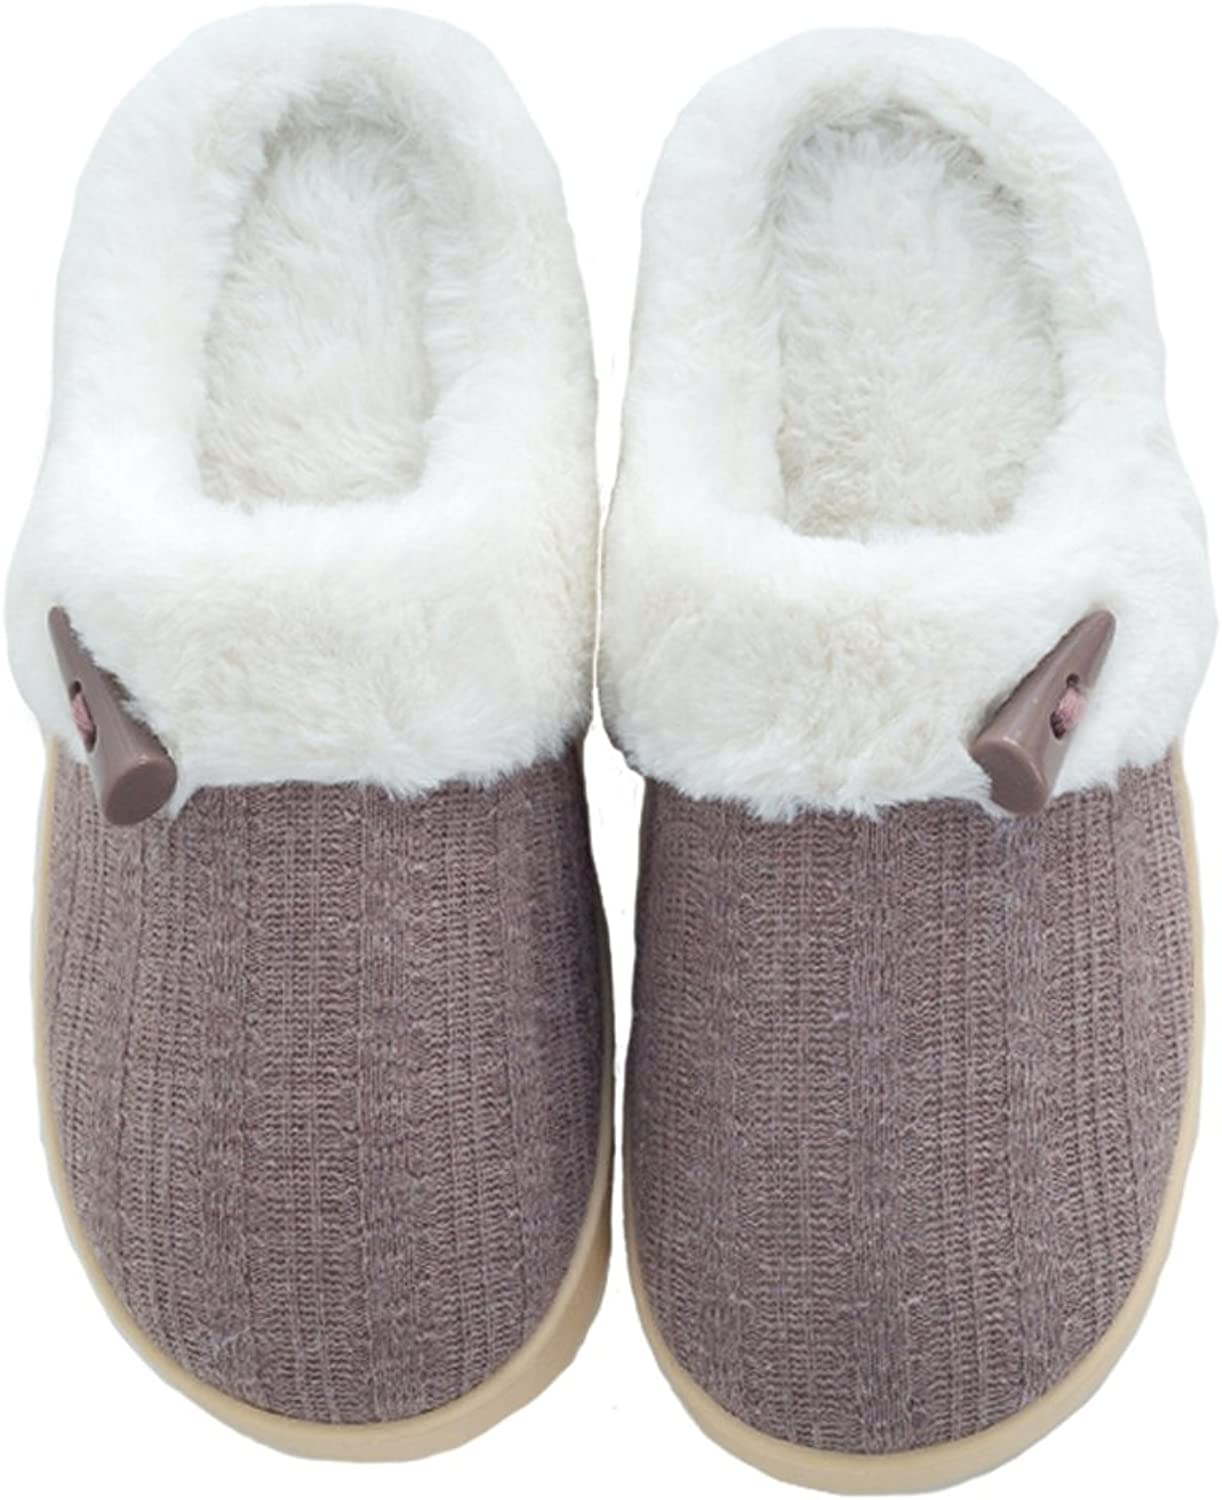 Aliwendy Winter Outdoor Indoor House Slippers Men and Women Cozy Woolen Knitted Plush Lining Home shoes